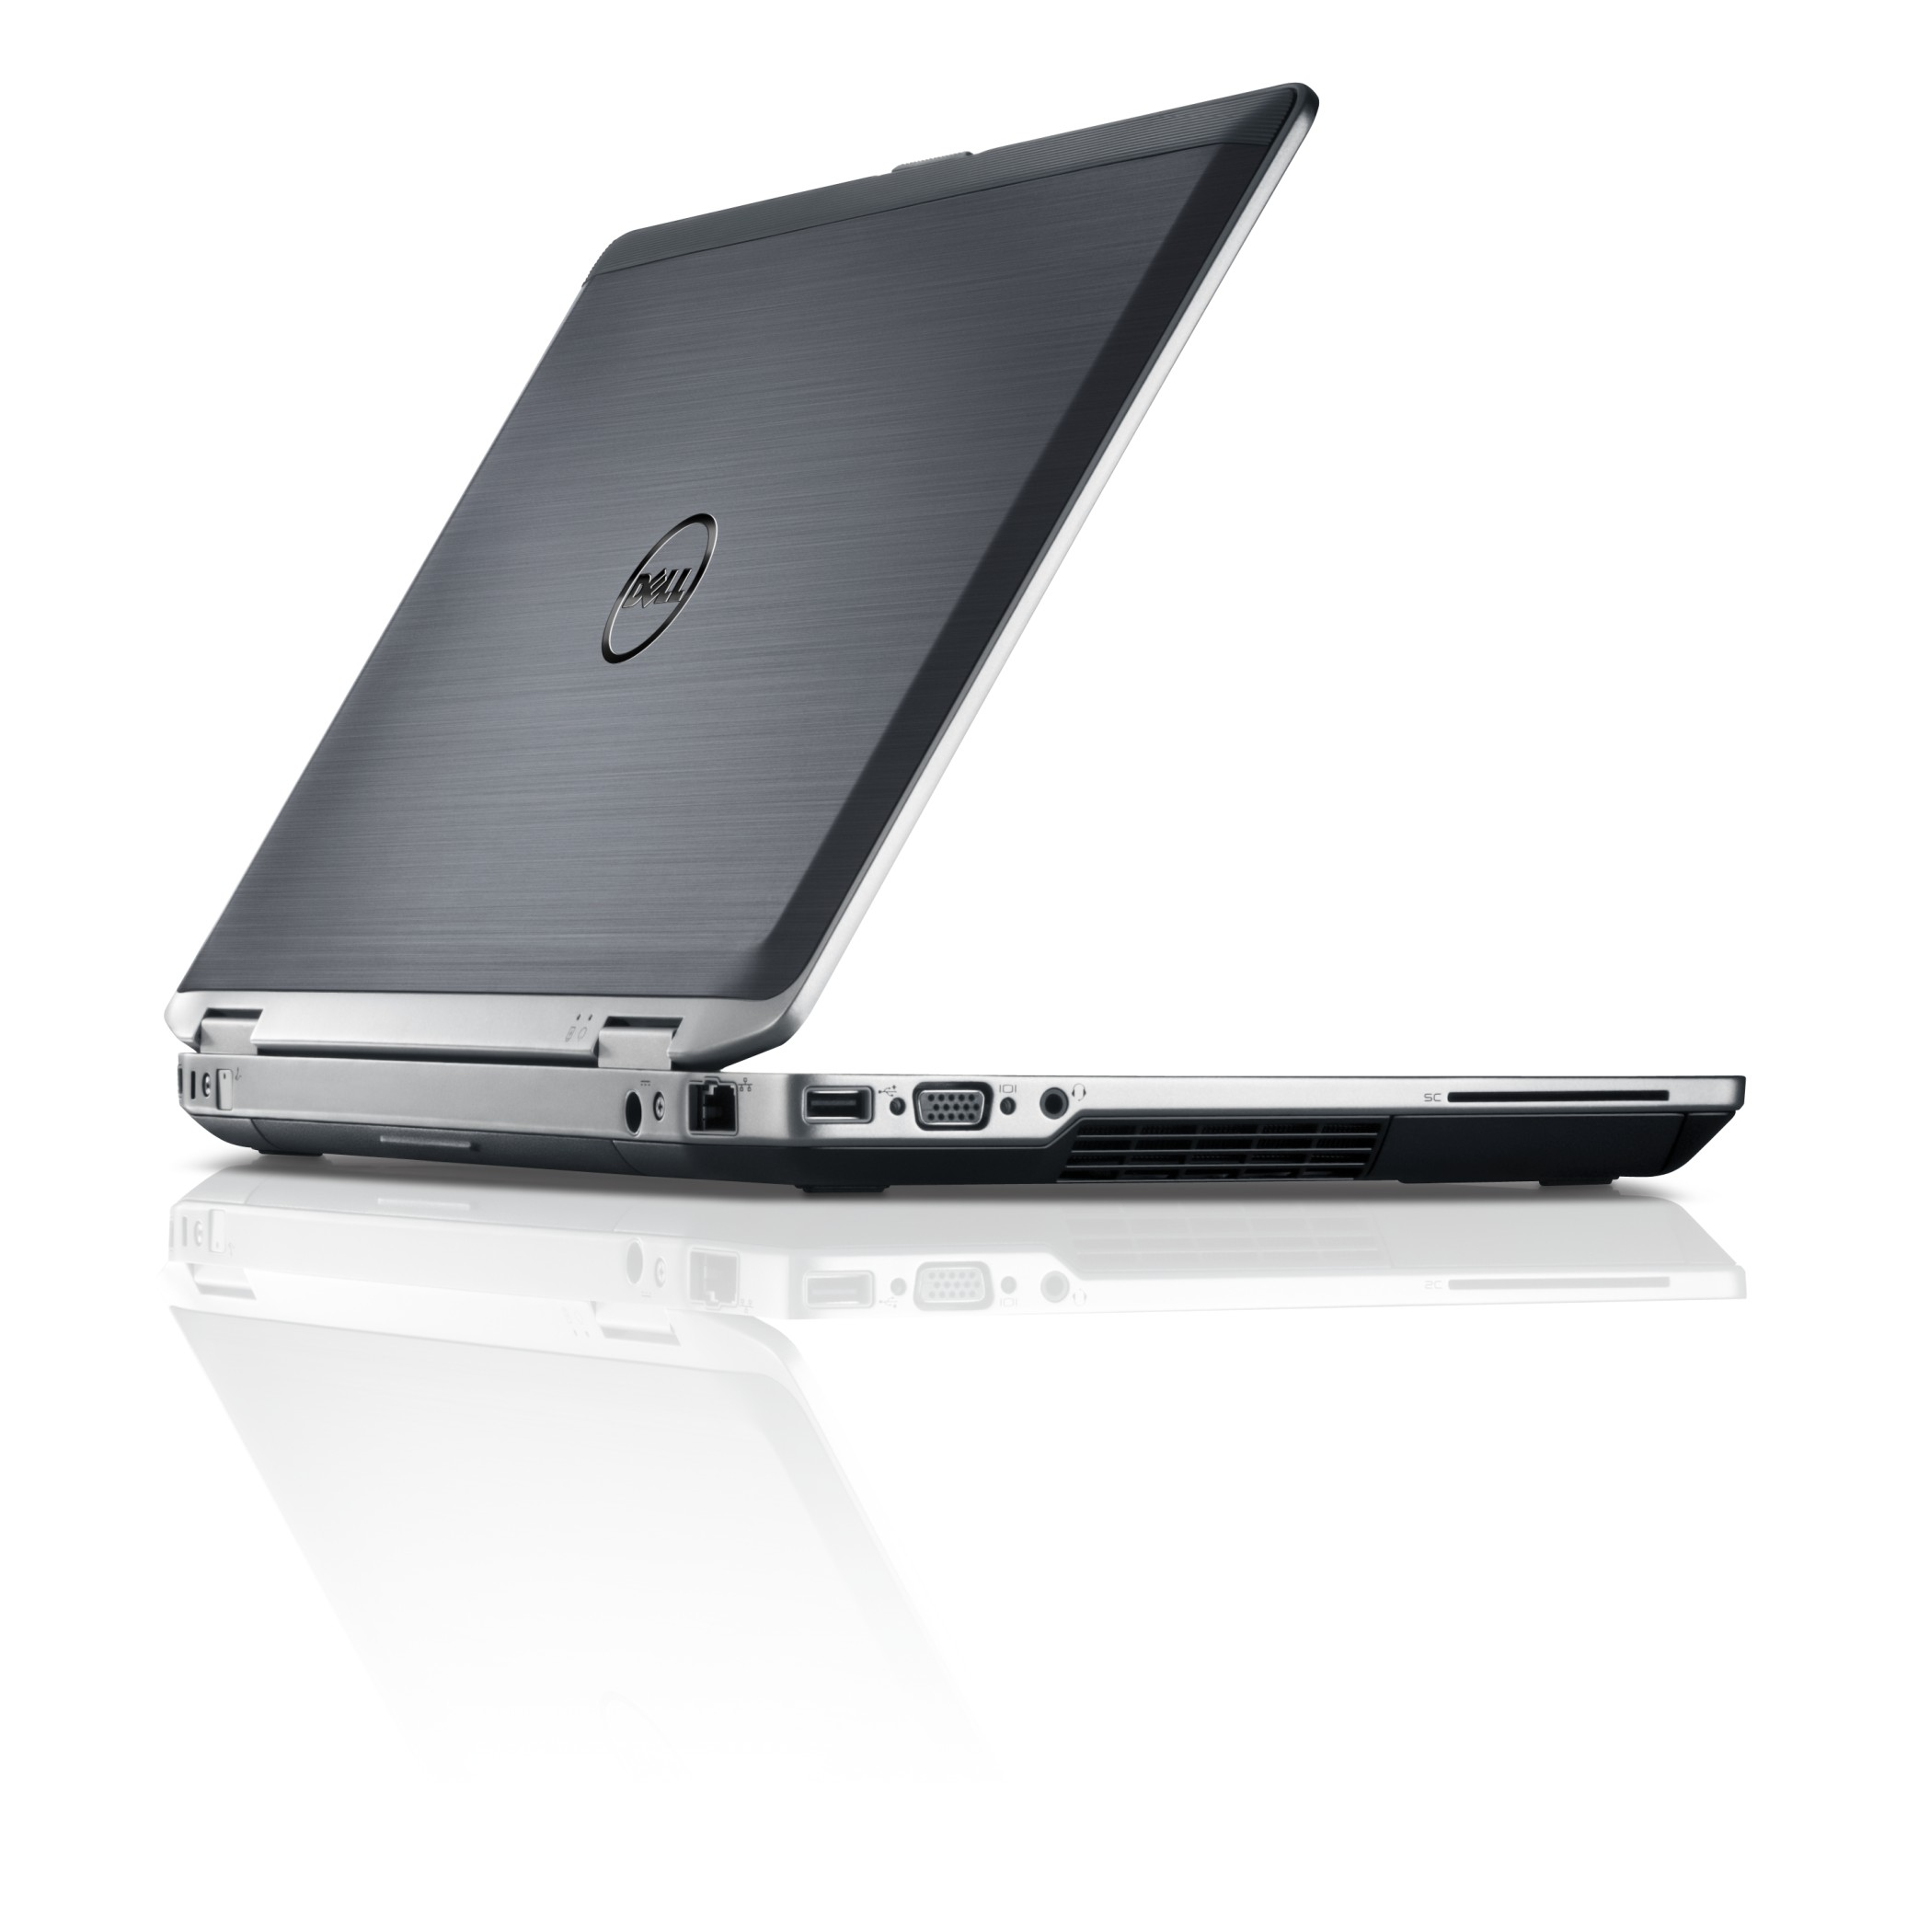 Laptop Dell Latitude E6420; Core I5 2.6 Ghz; 4 Gb;